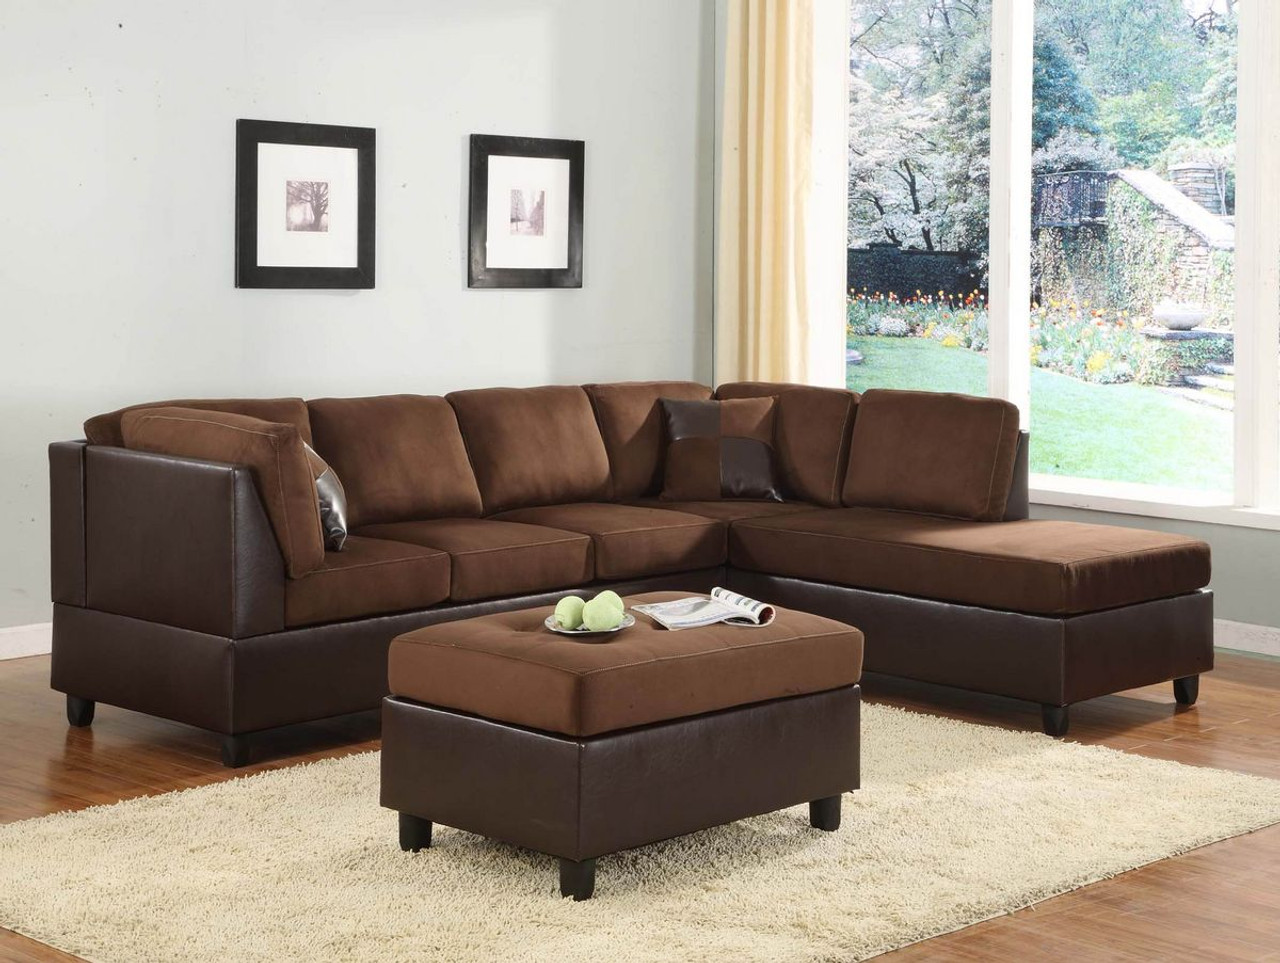 Homelegance Comfort Living Chocolate Reversible Sectional Sofa Set ...